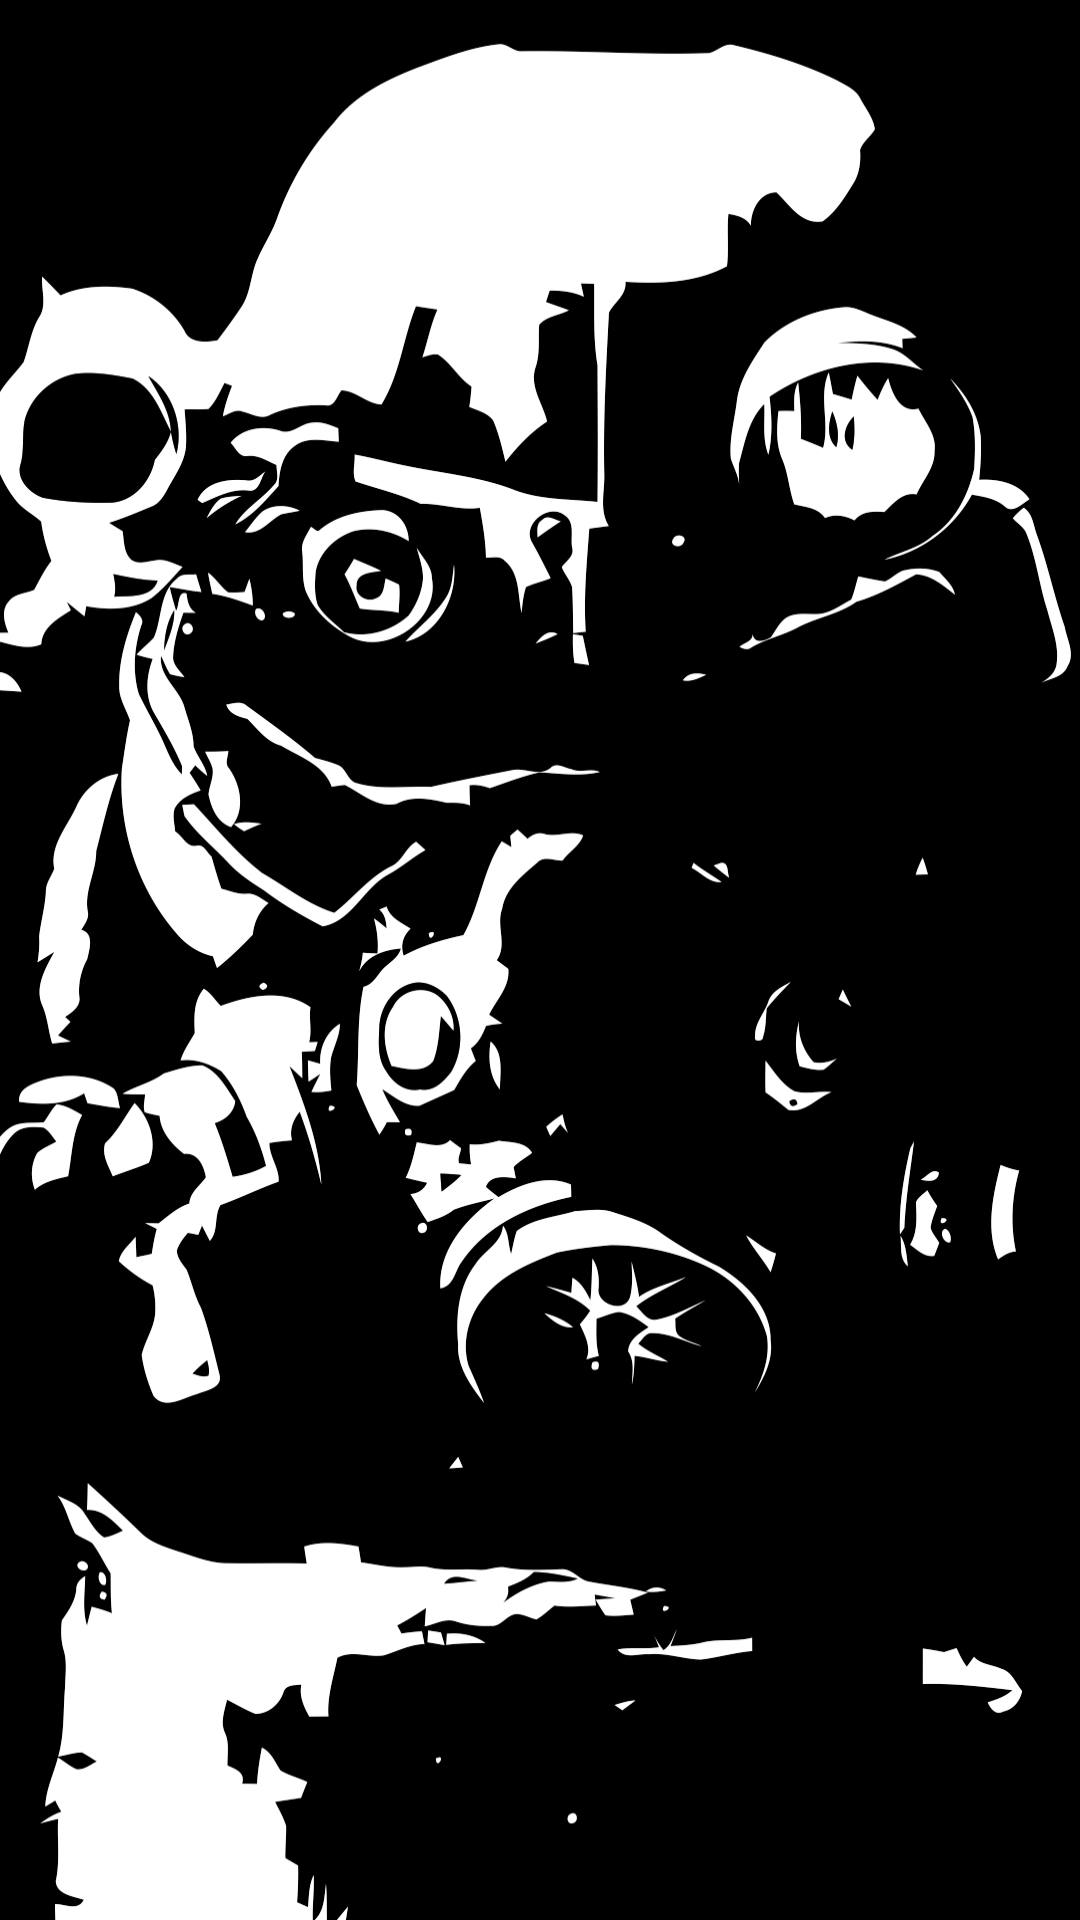 49 Fallout Apple Iphone 6 Plus 1080x1920 Wallpapers Mobile Abyss